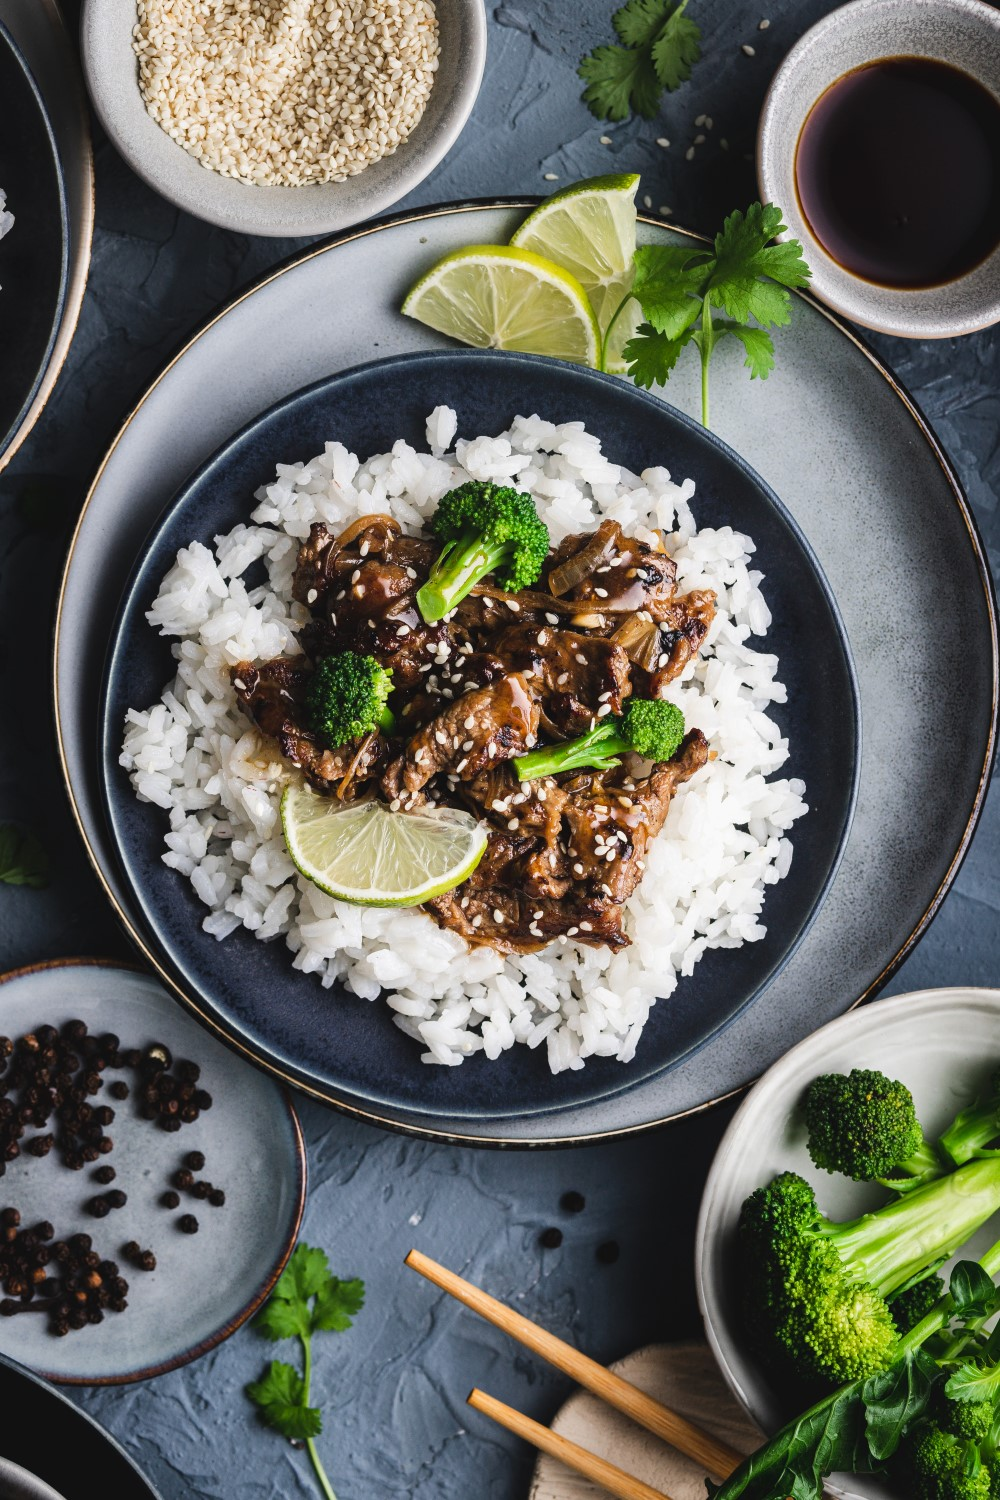 This 15-minute Mongolian beef recipe is all about flavor! It's a definite winner since it's really quick and so so easy to make.